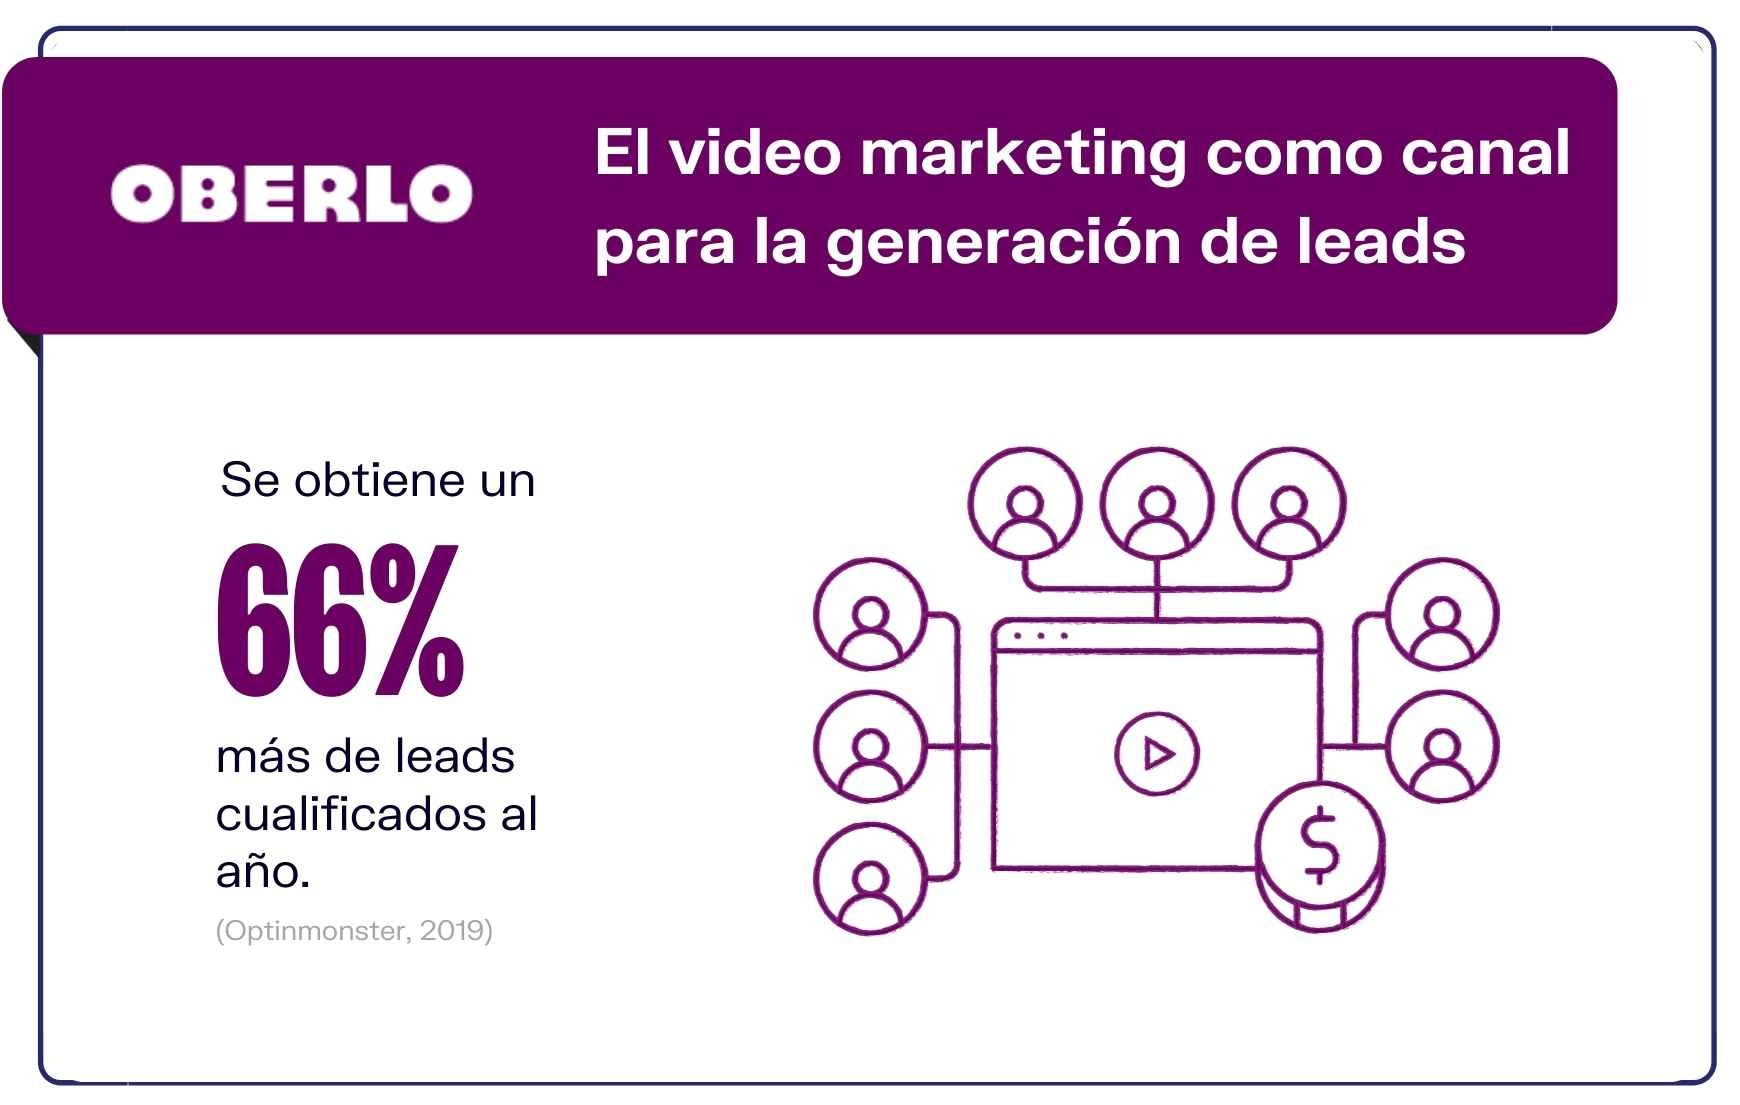 Usuarios de marketing video